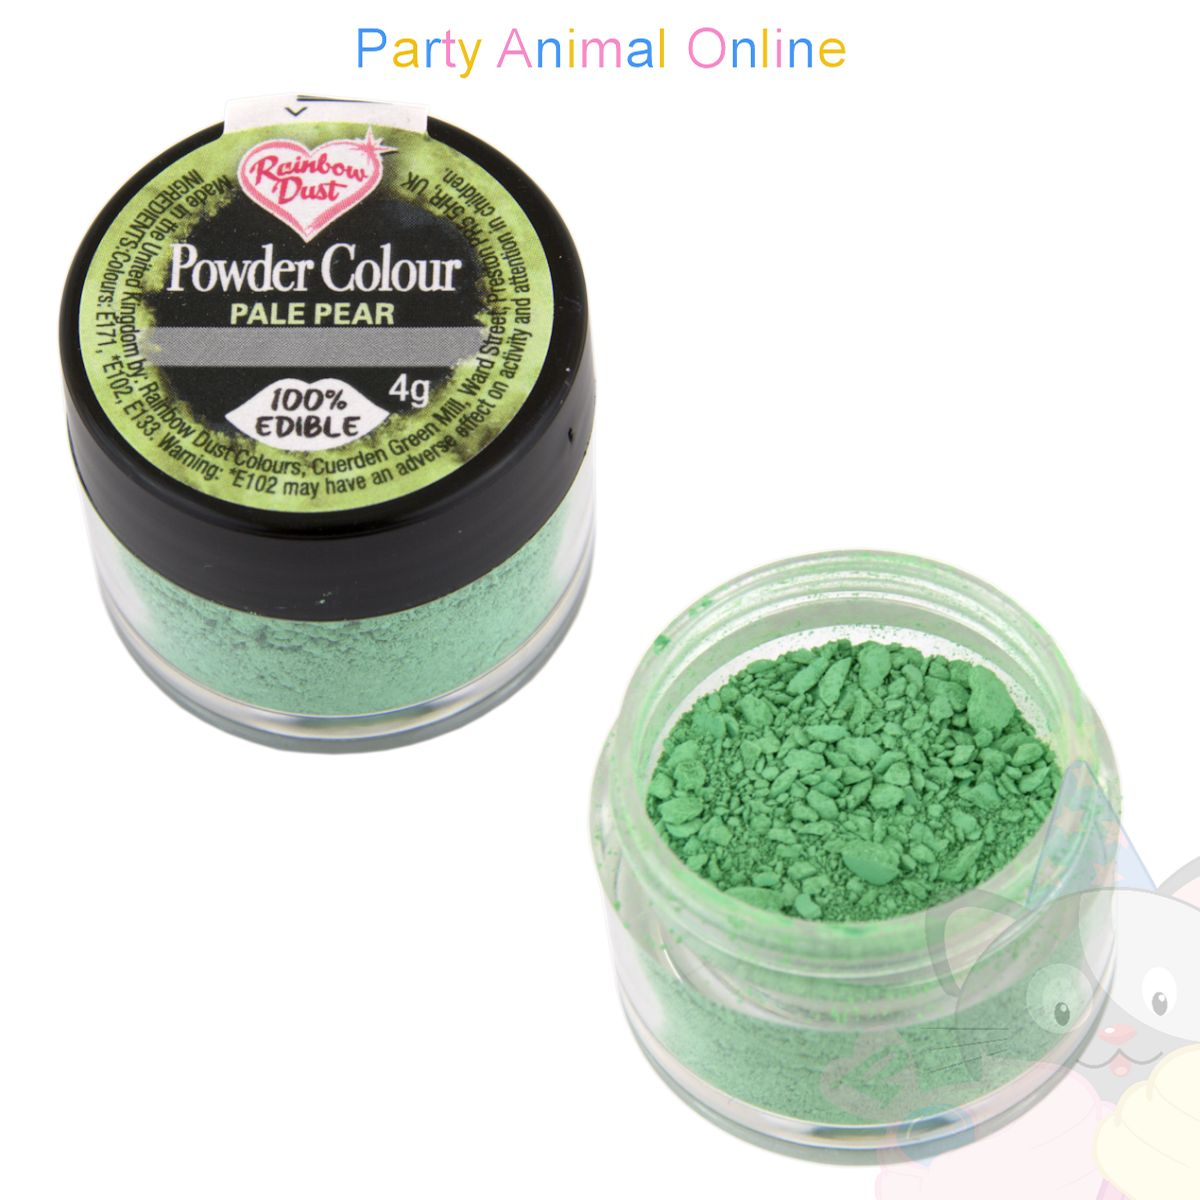 Rainbow Dust Powder Colour Range - PALE PEAR